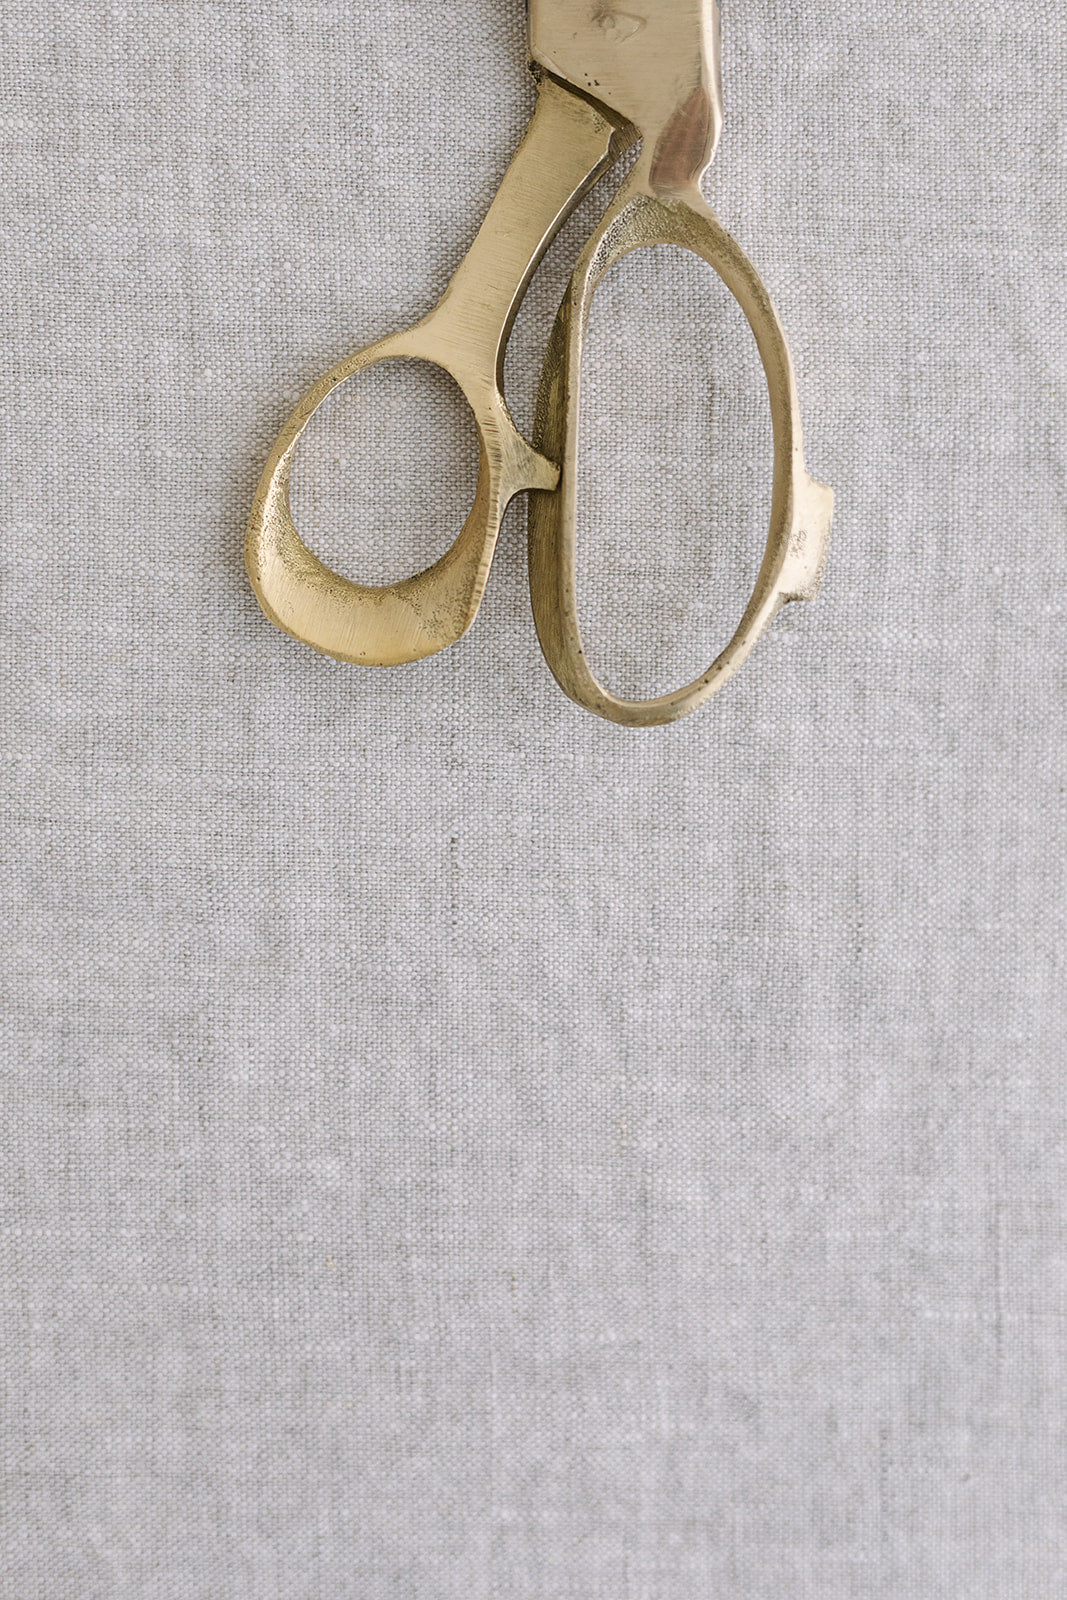 Brass Handled Shears